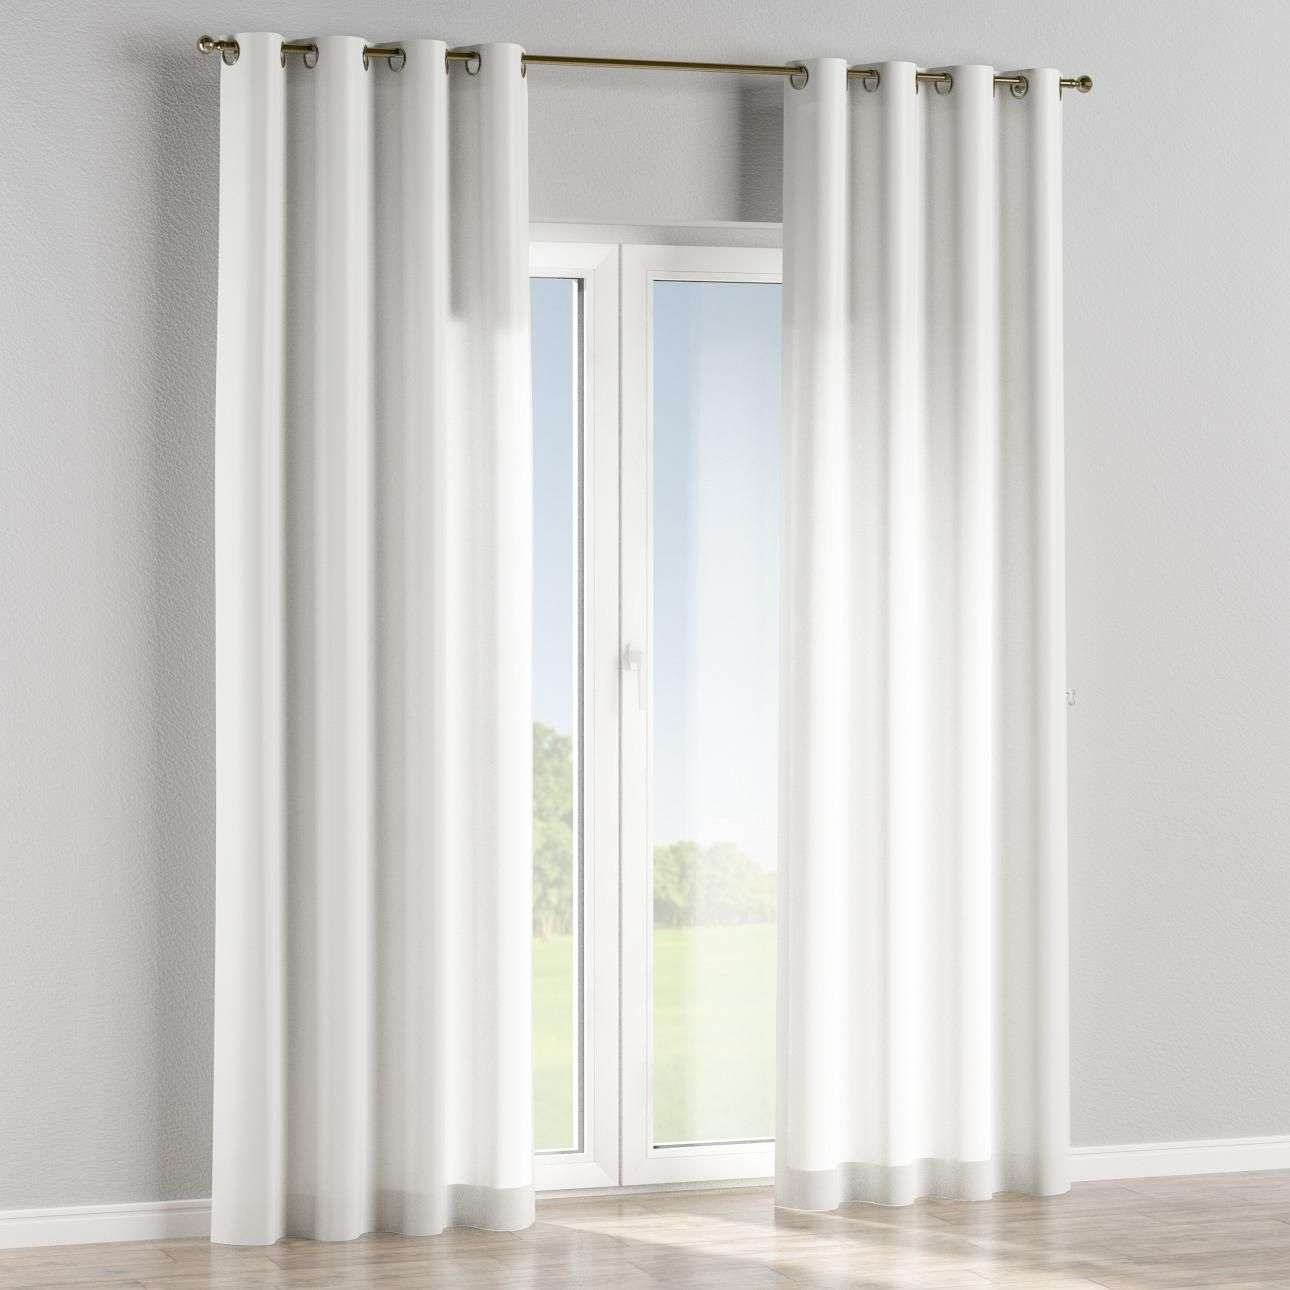 Eyelet lined curtains in collection Bristol, fabric: 126-09